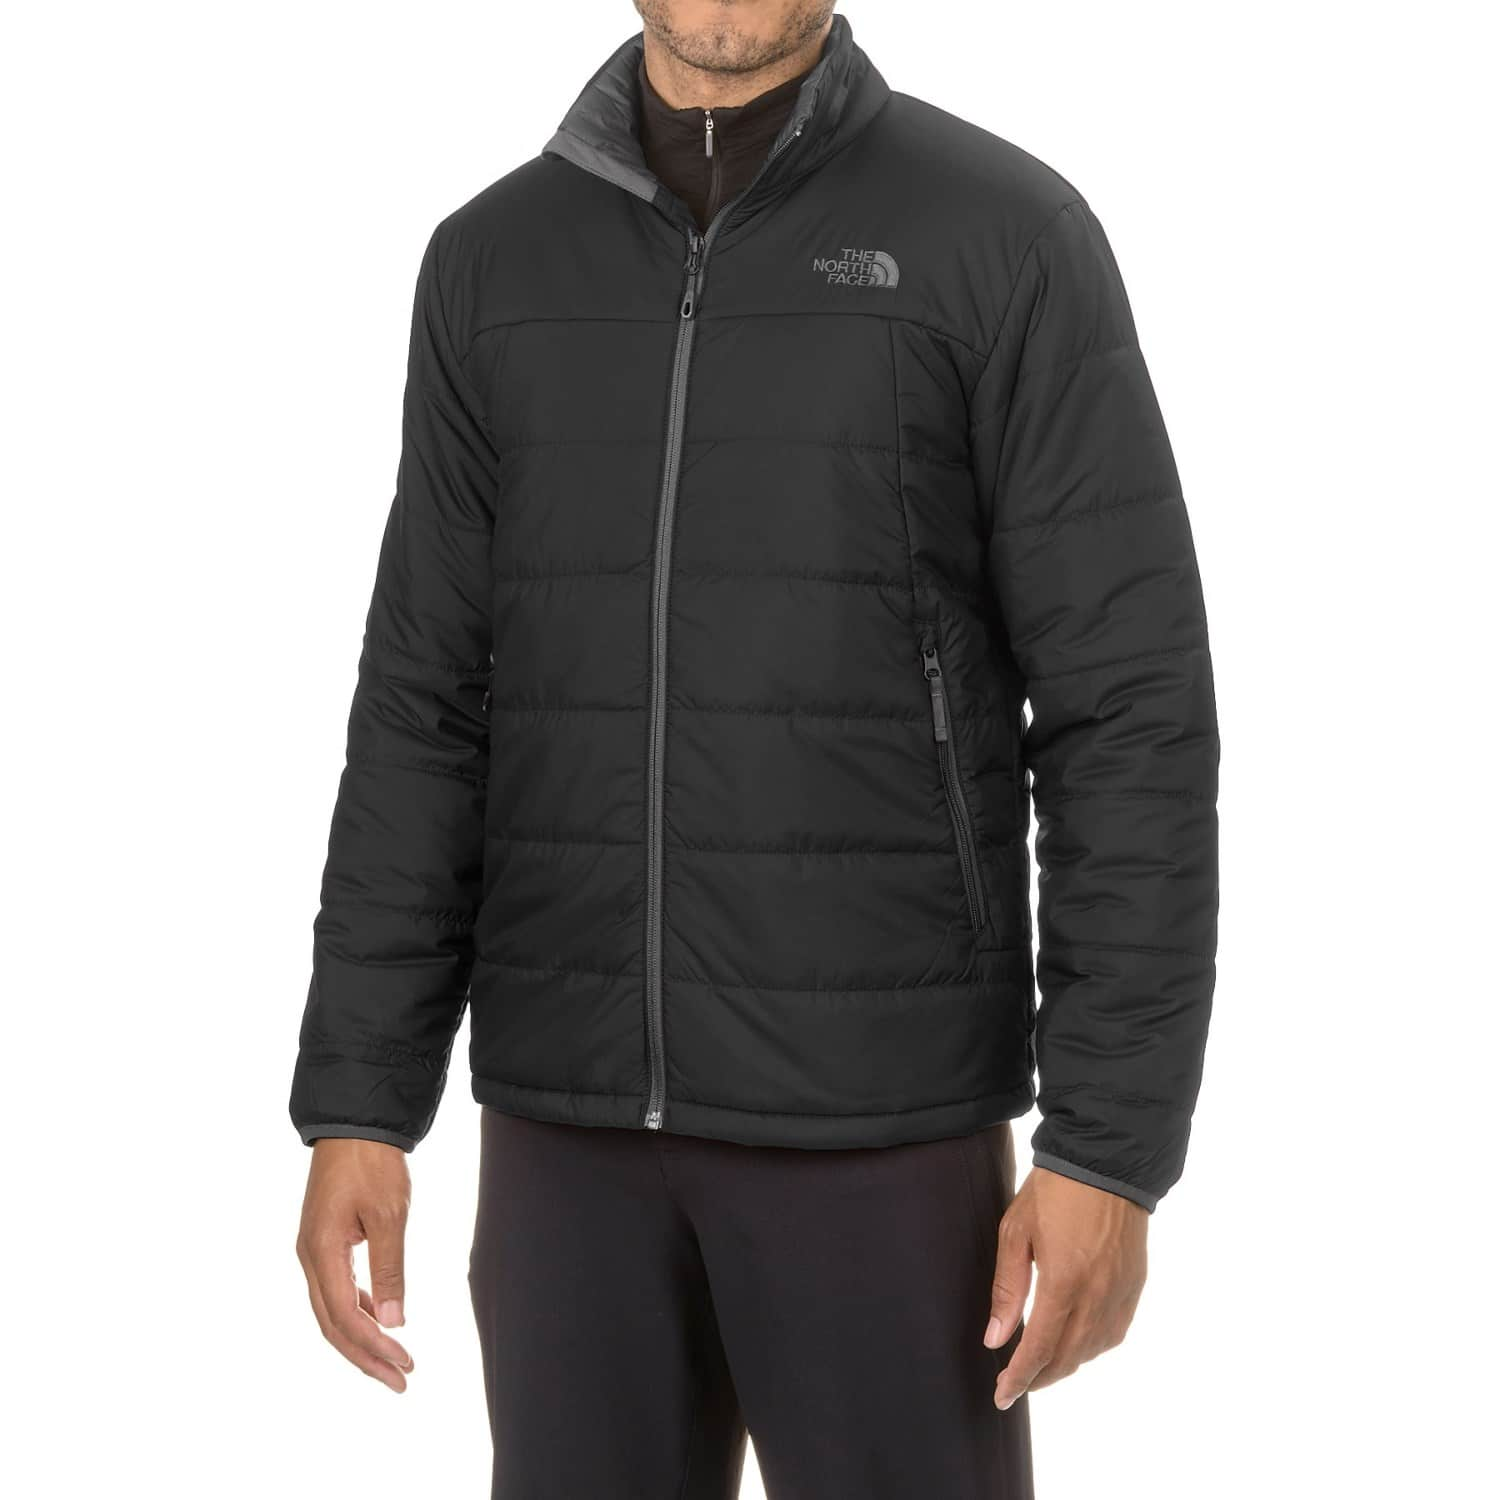 The North Face Bombay Jacket Insulated 60 Fs Sierra